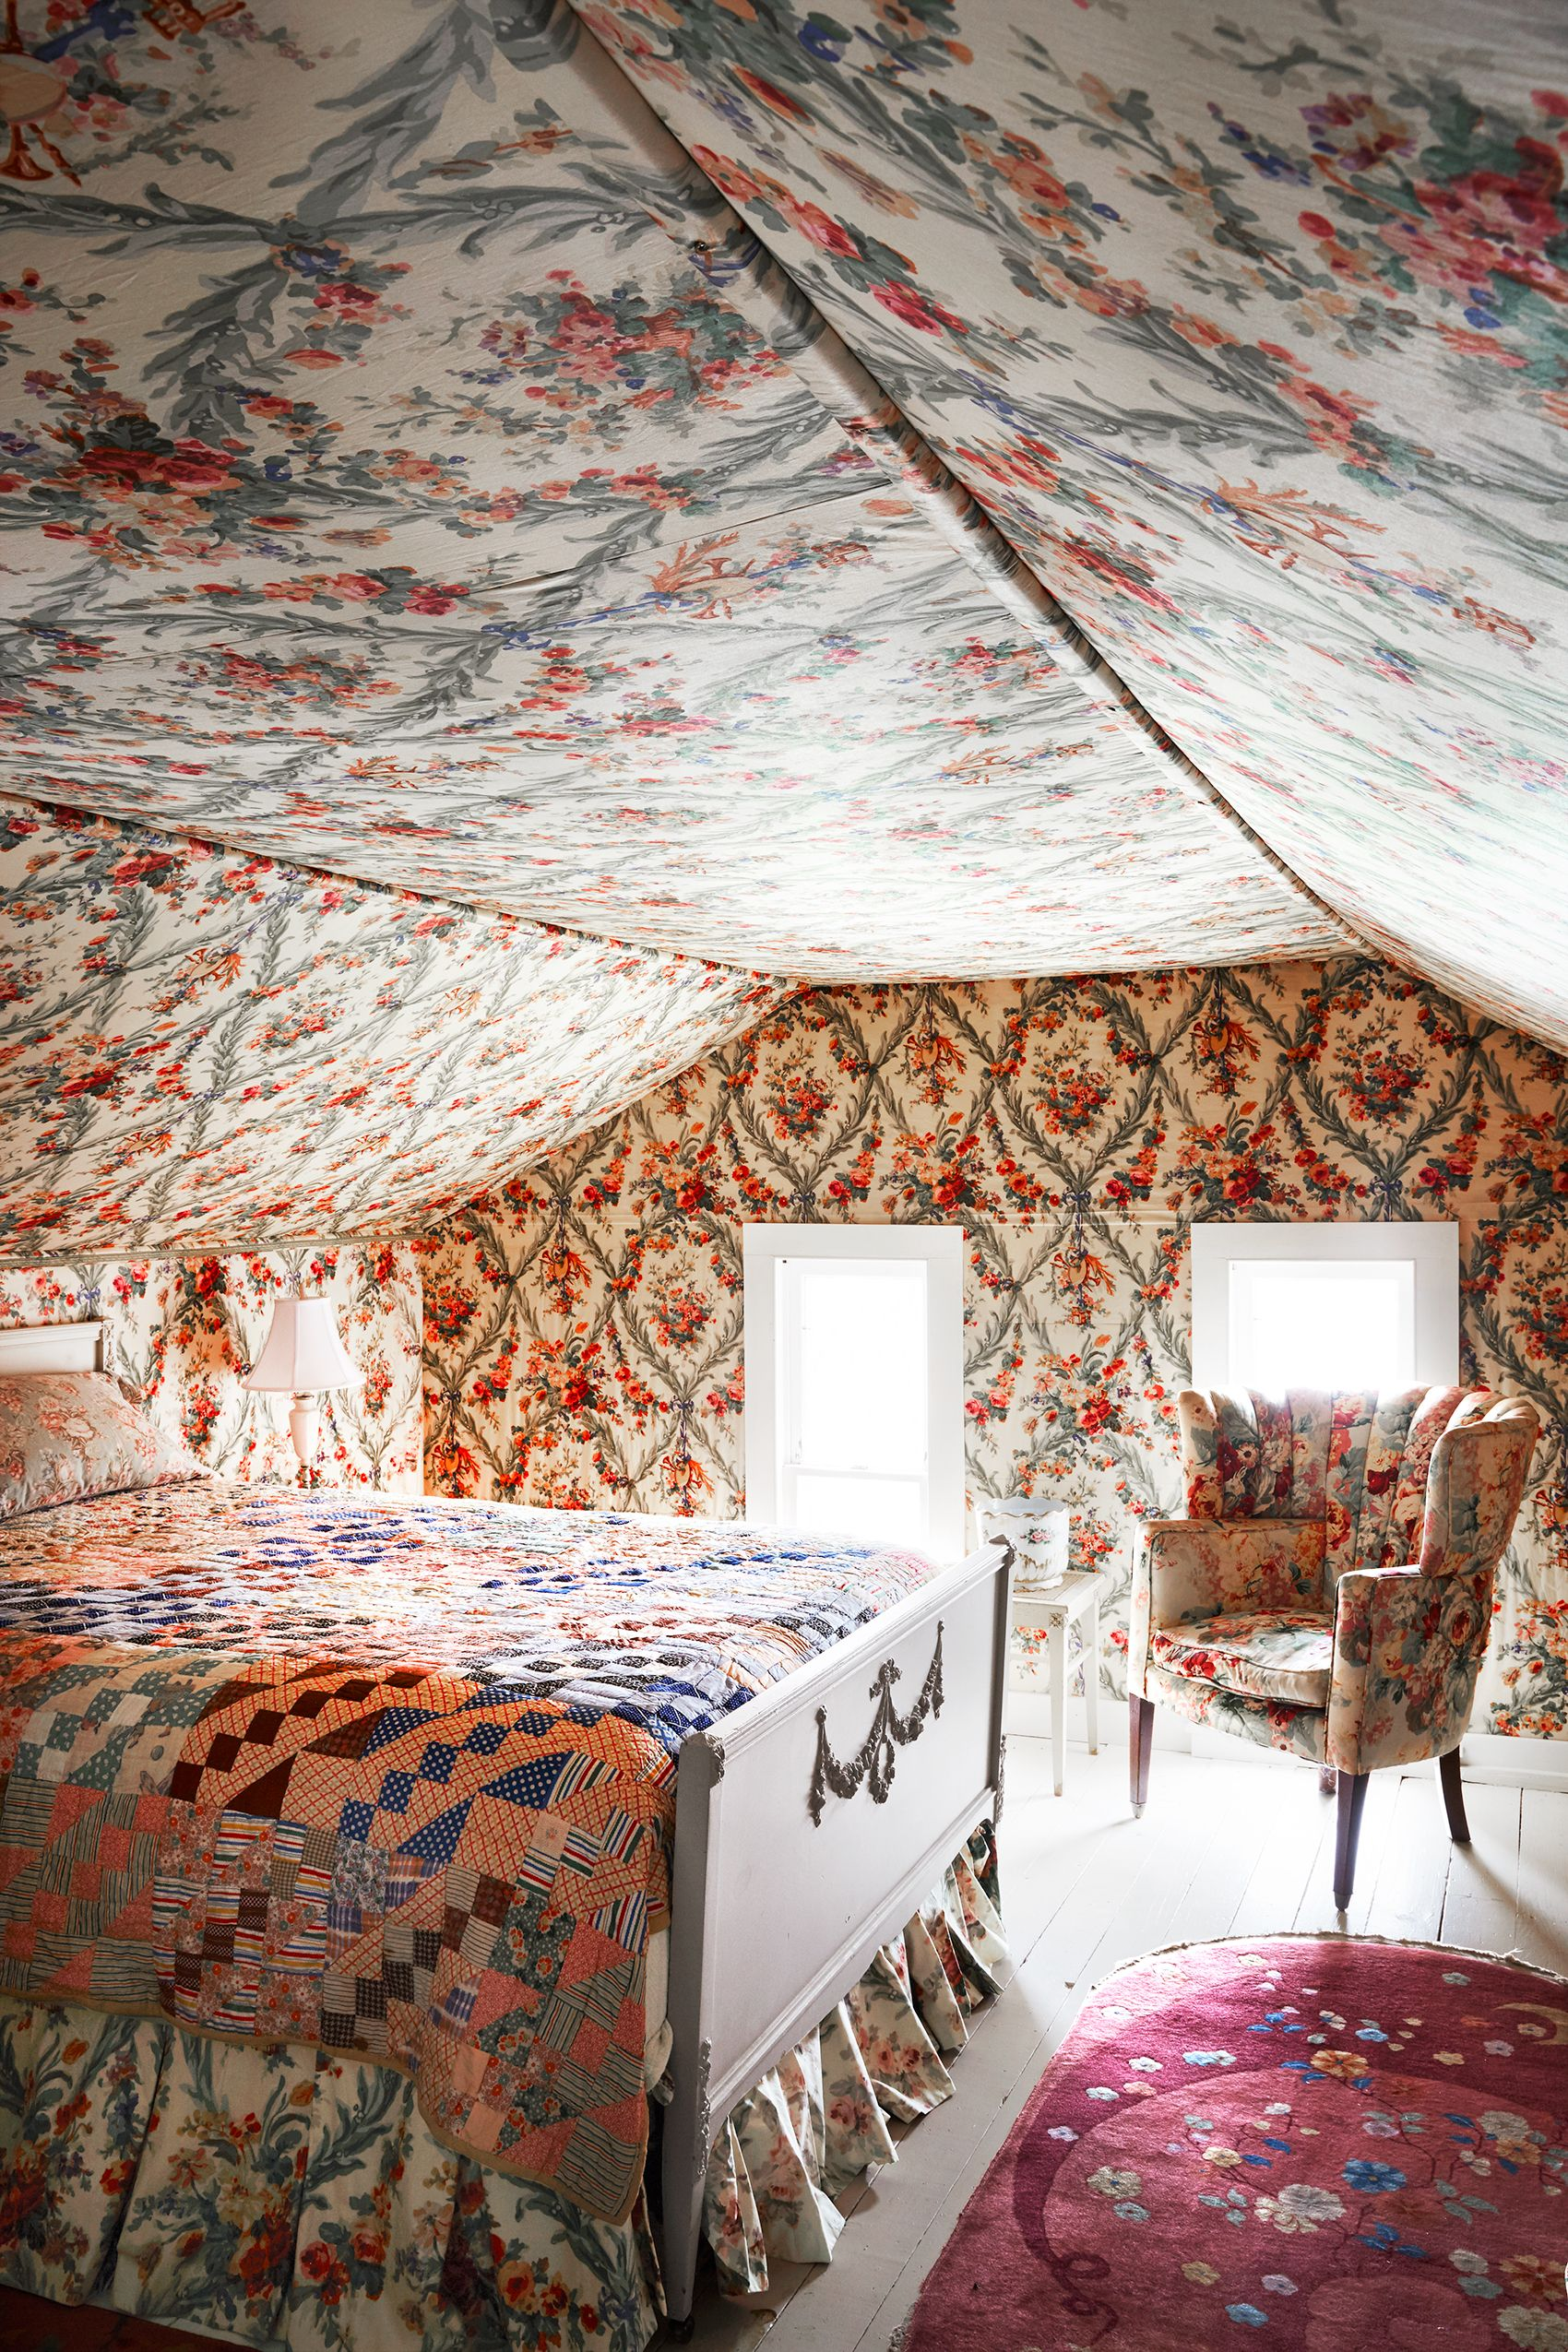 11 Tented Rooms Fit for a Modern-Day Marie Antoinette